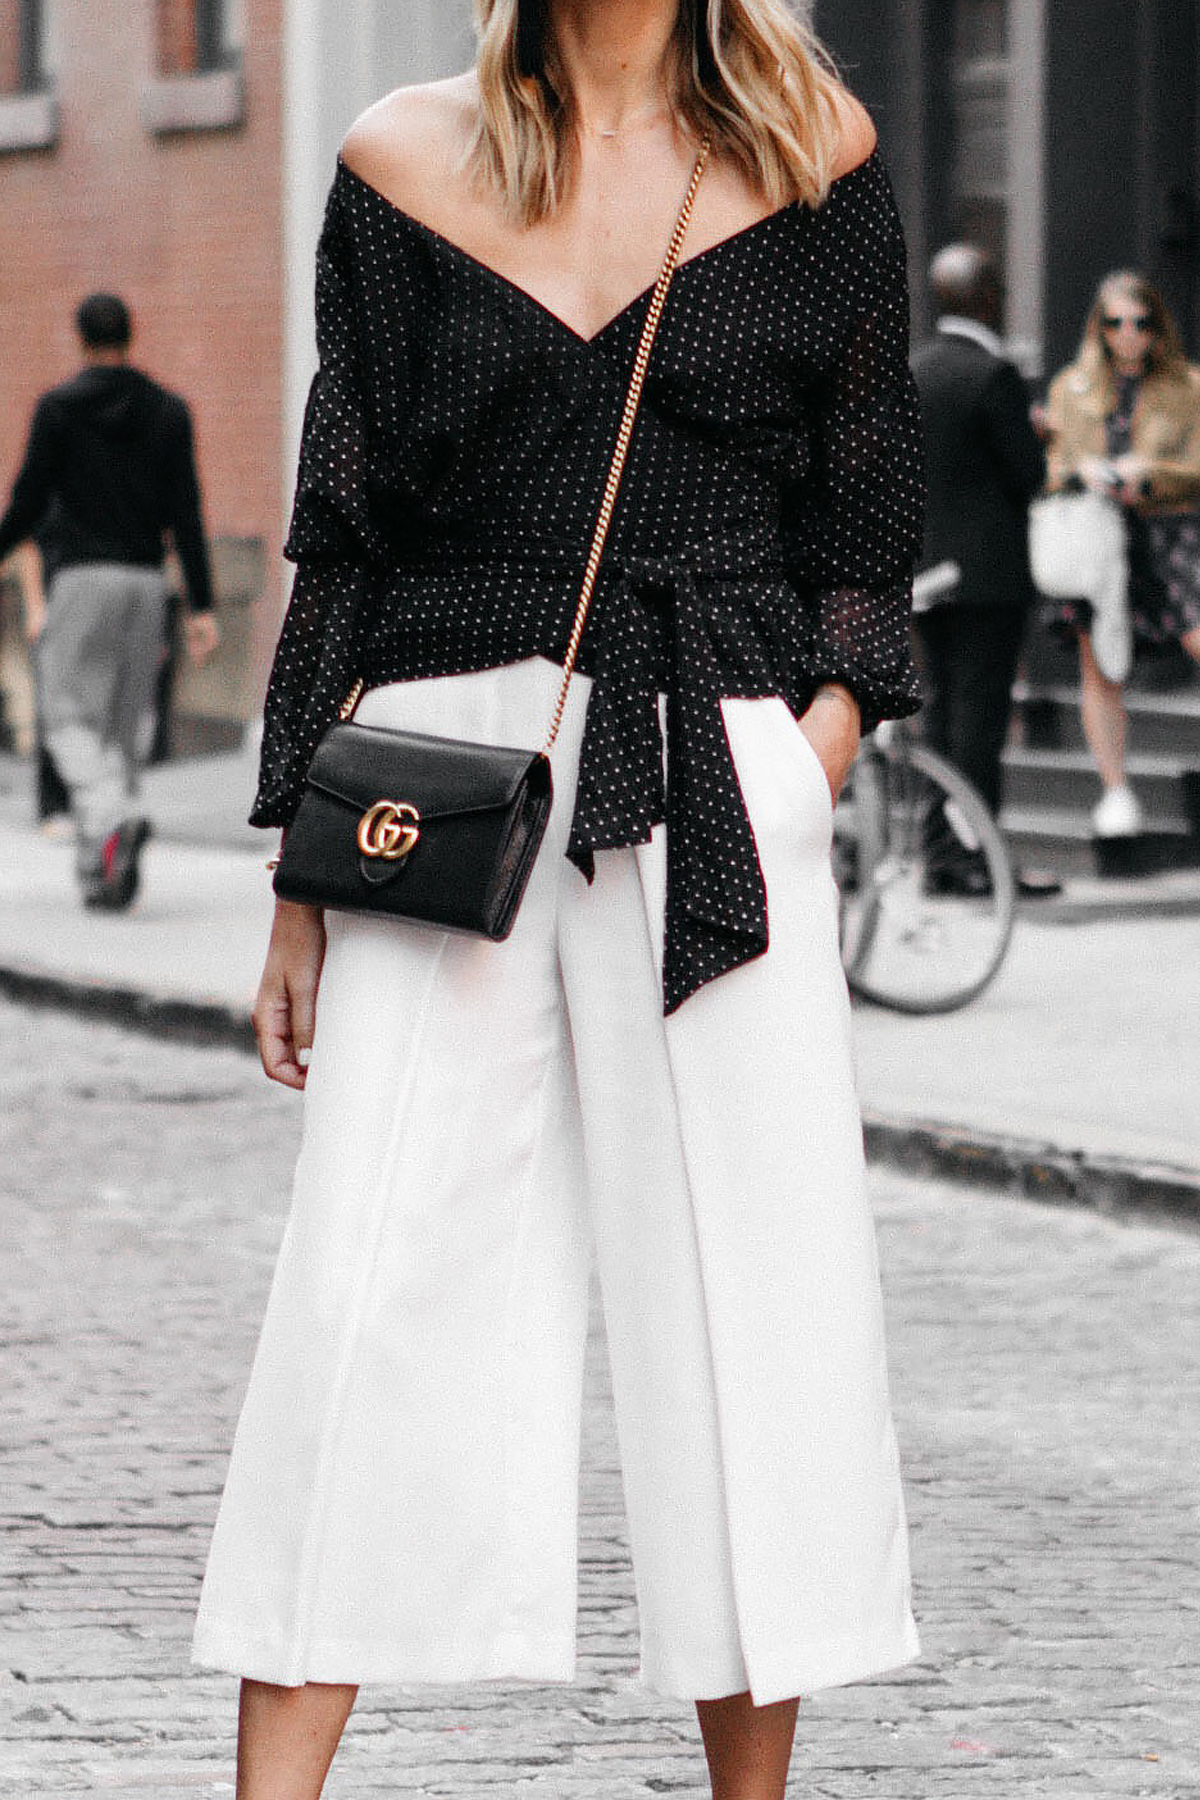 Club Monaco Black Wrap Top White Culottes Gucci Marmont Handbag Fashion Jackson Dallas Blogger Fashion Blogger NYFW